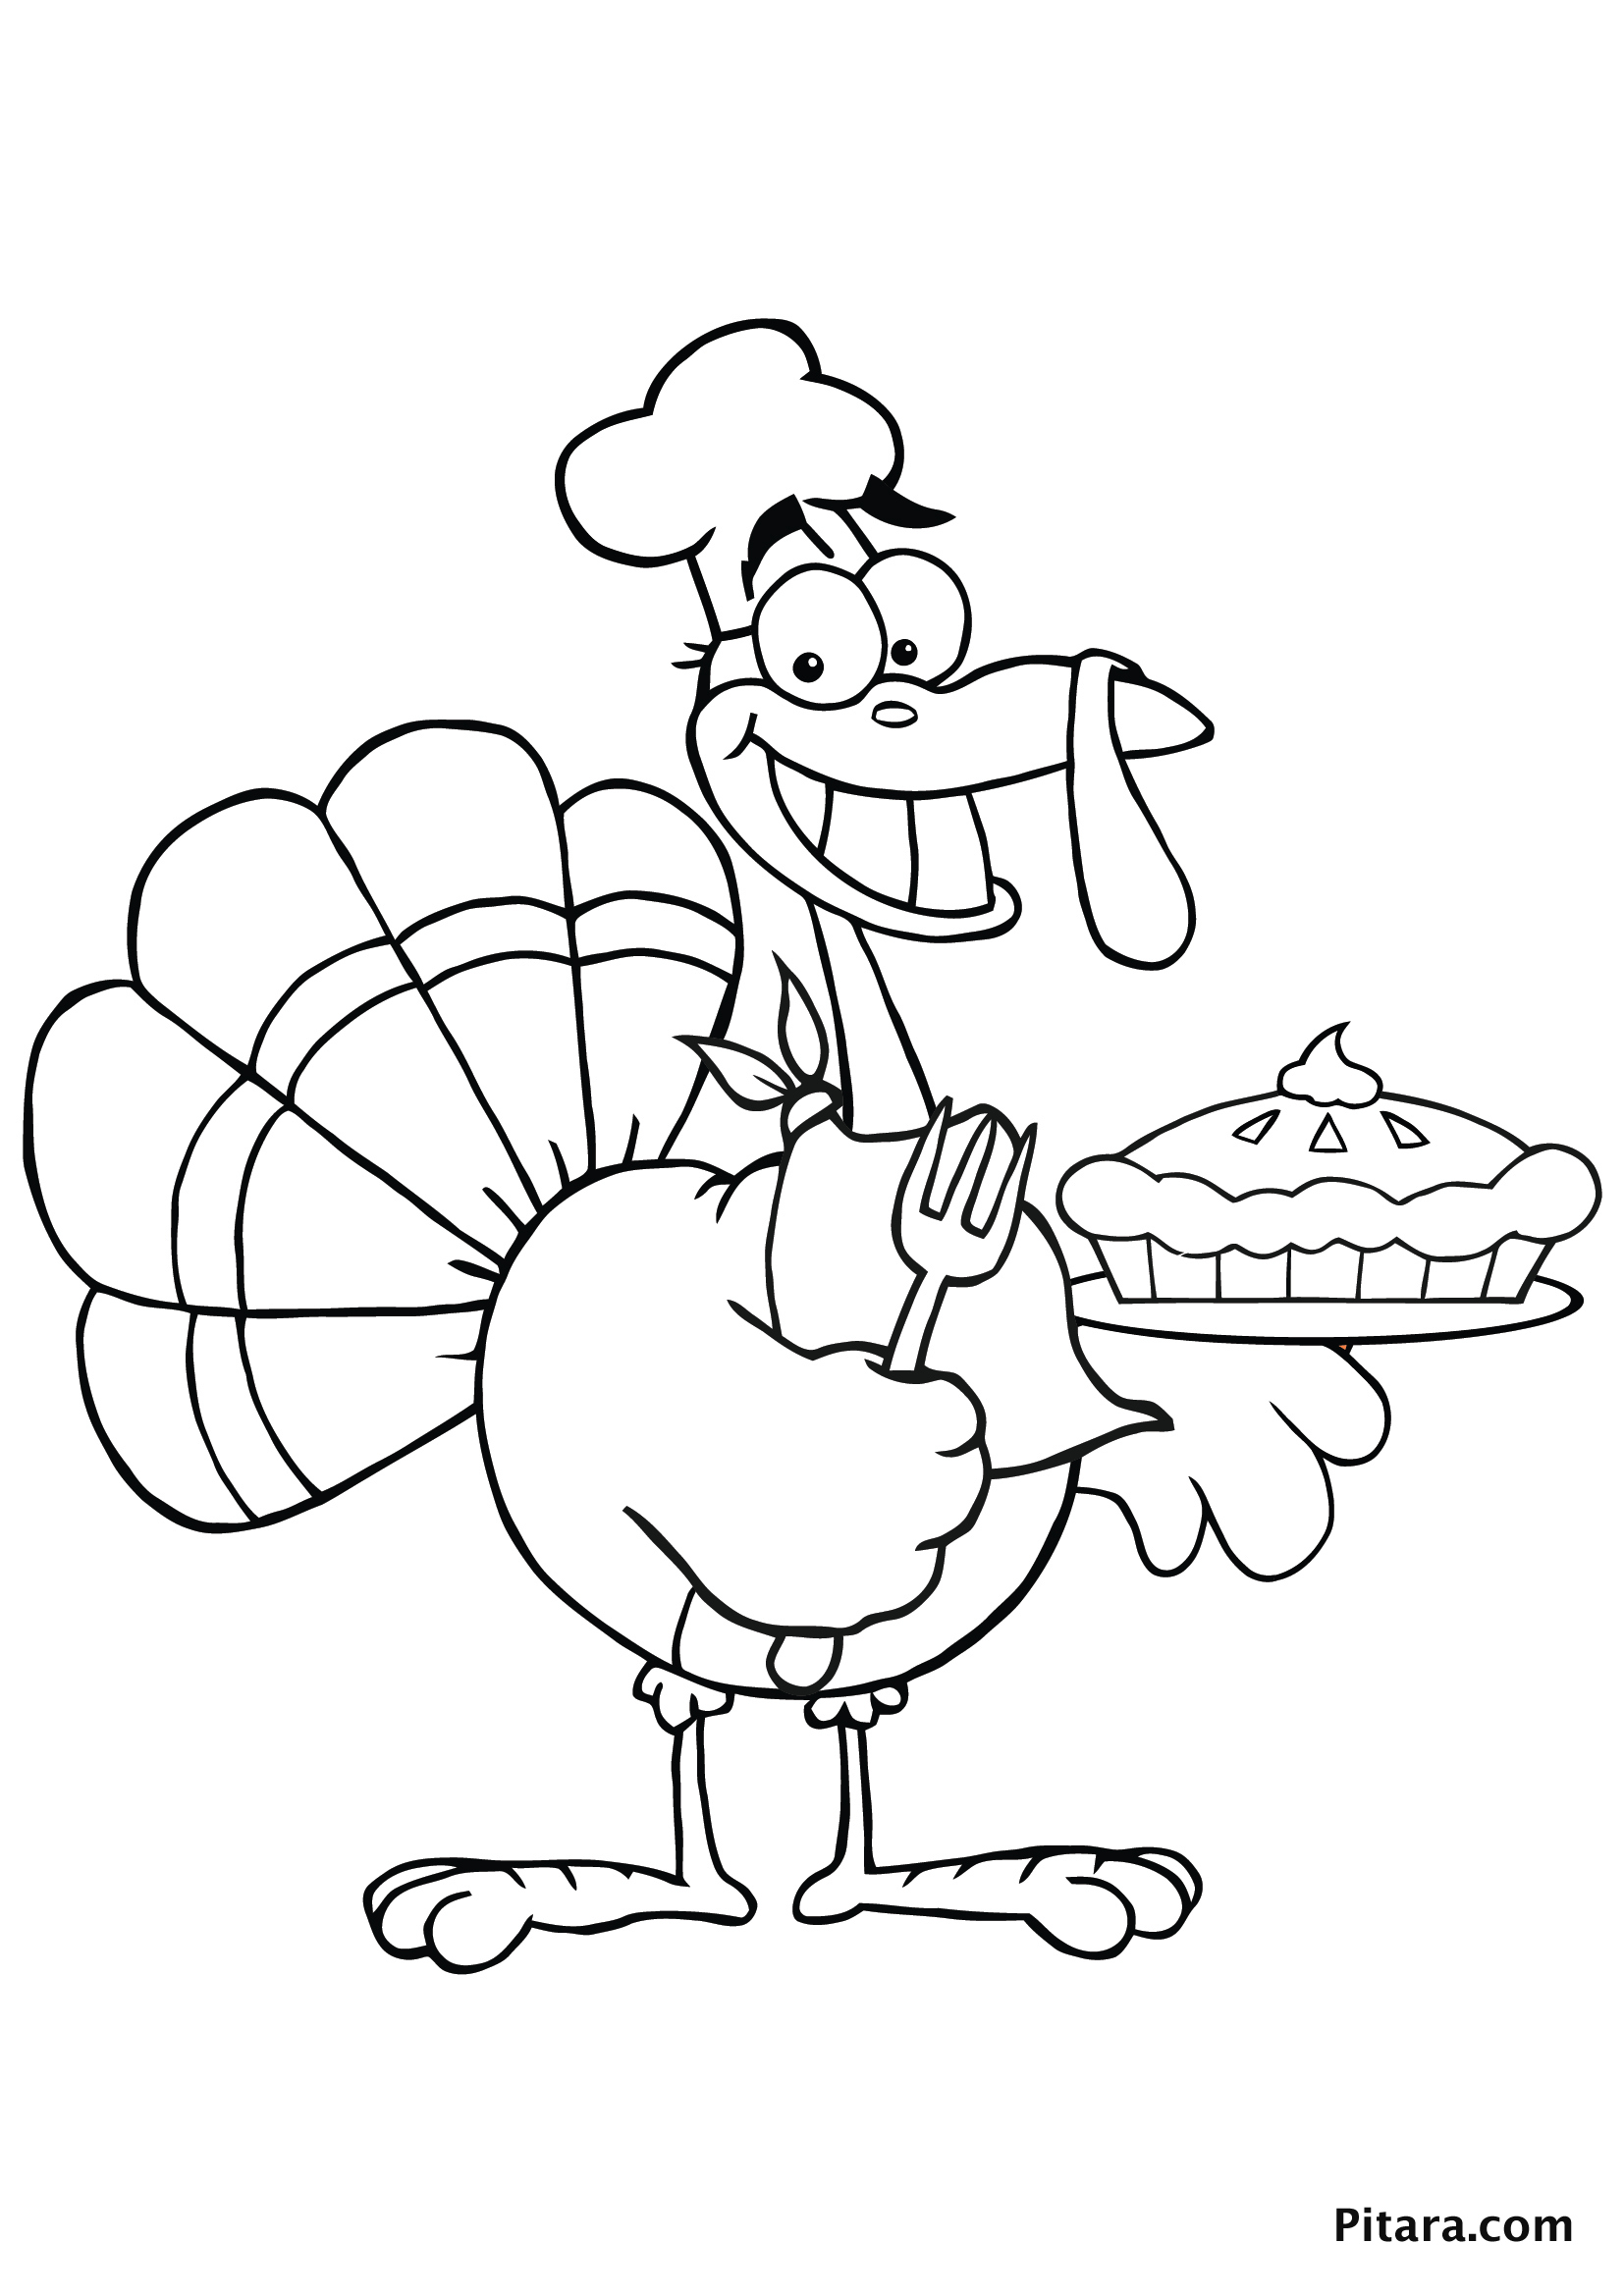 Turkey Coloring Pages for Kids